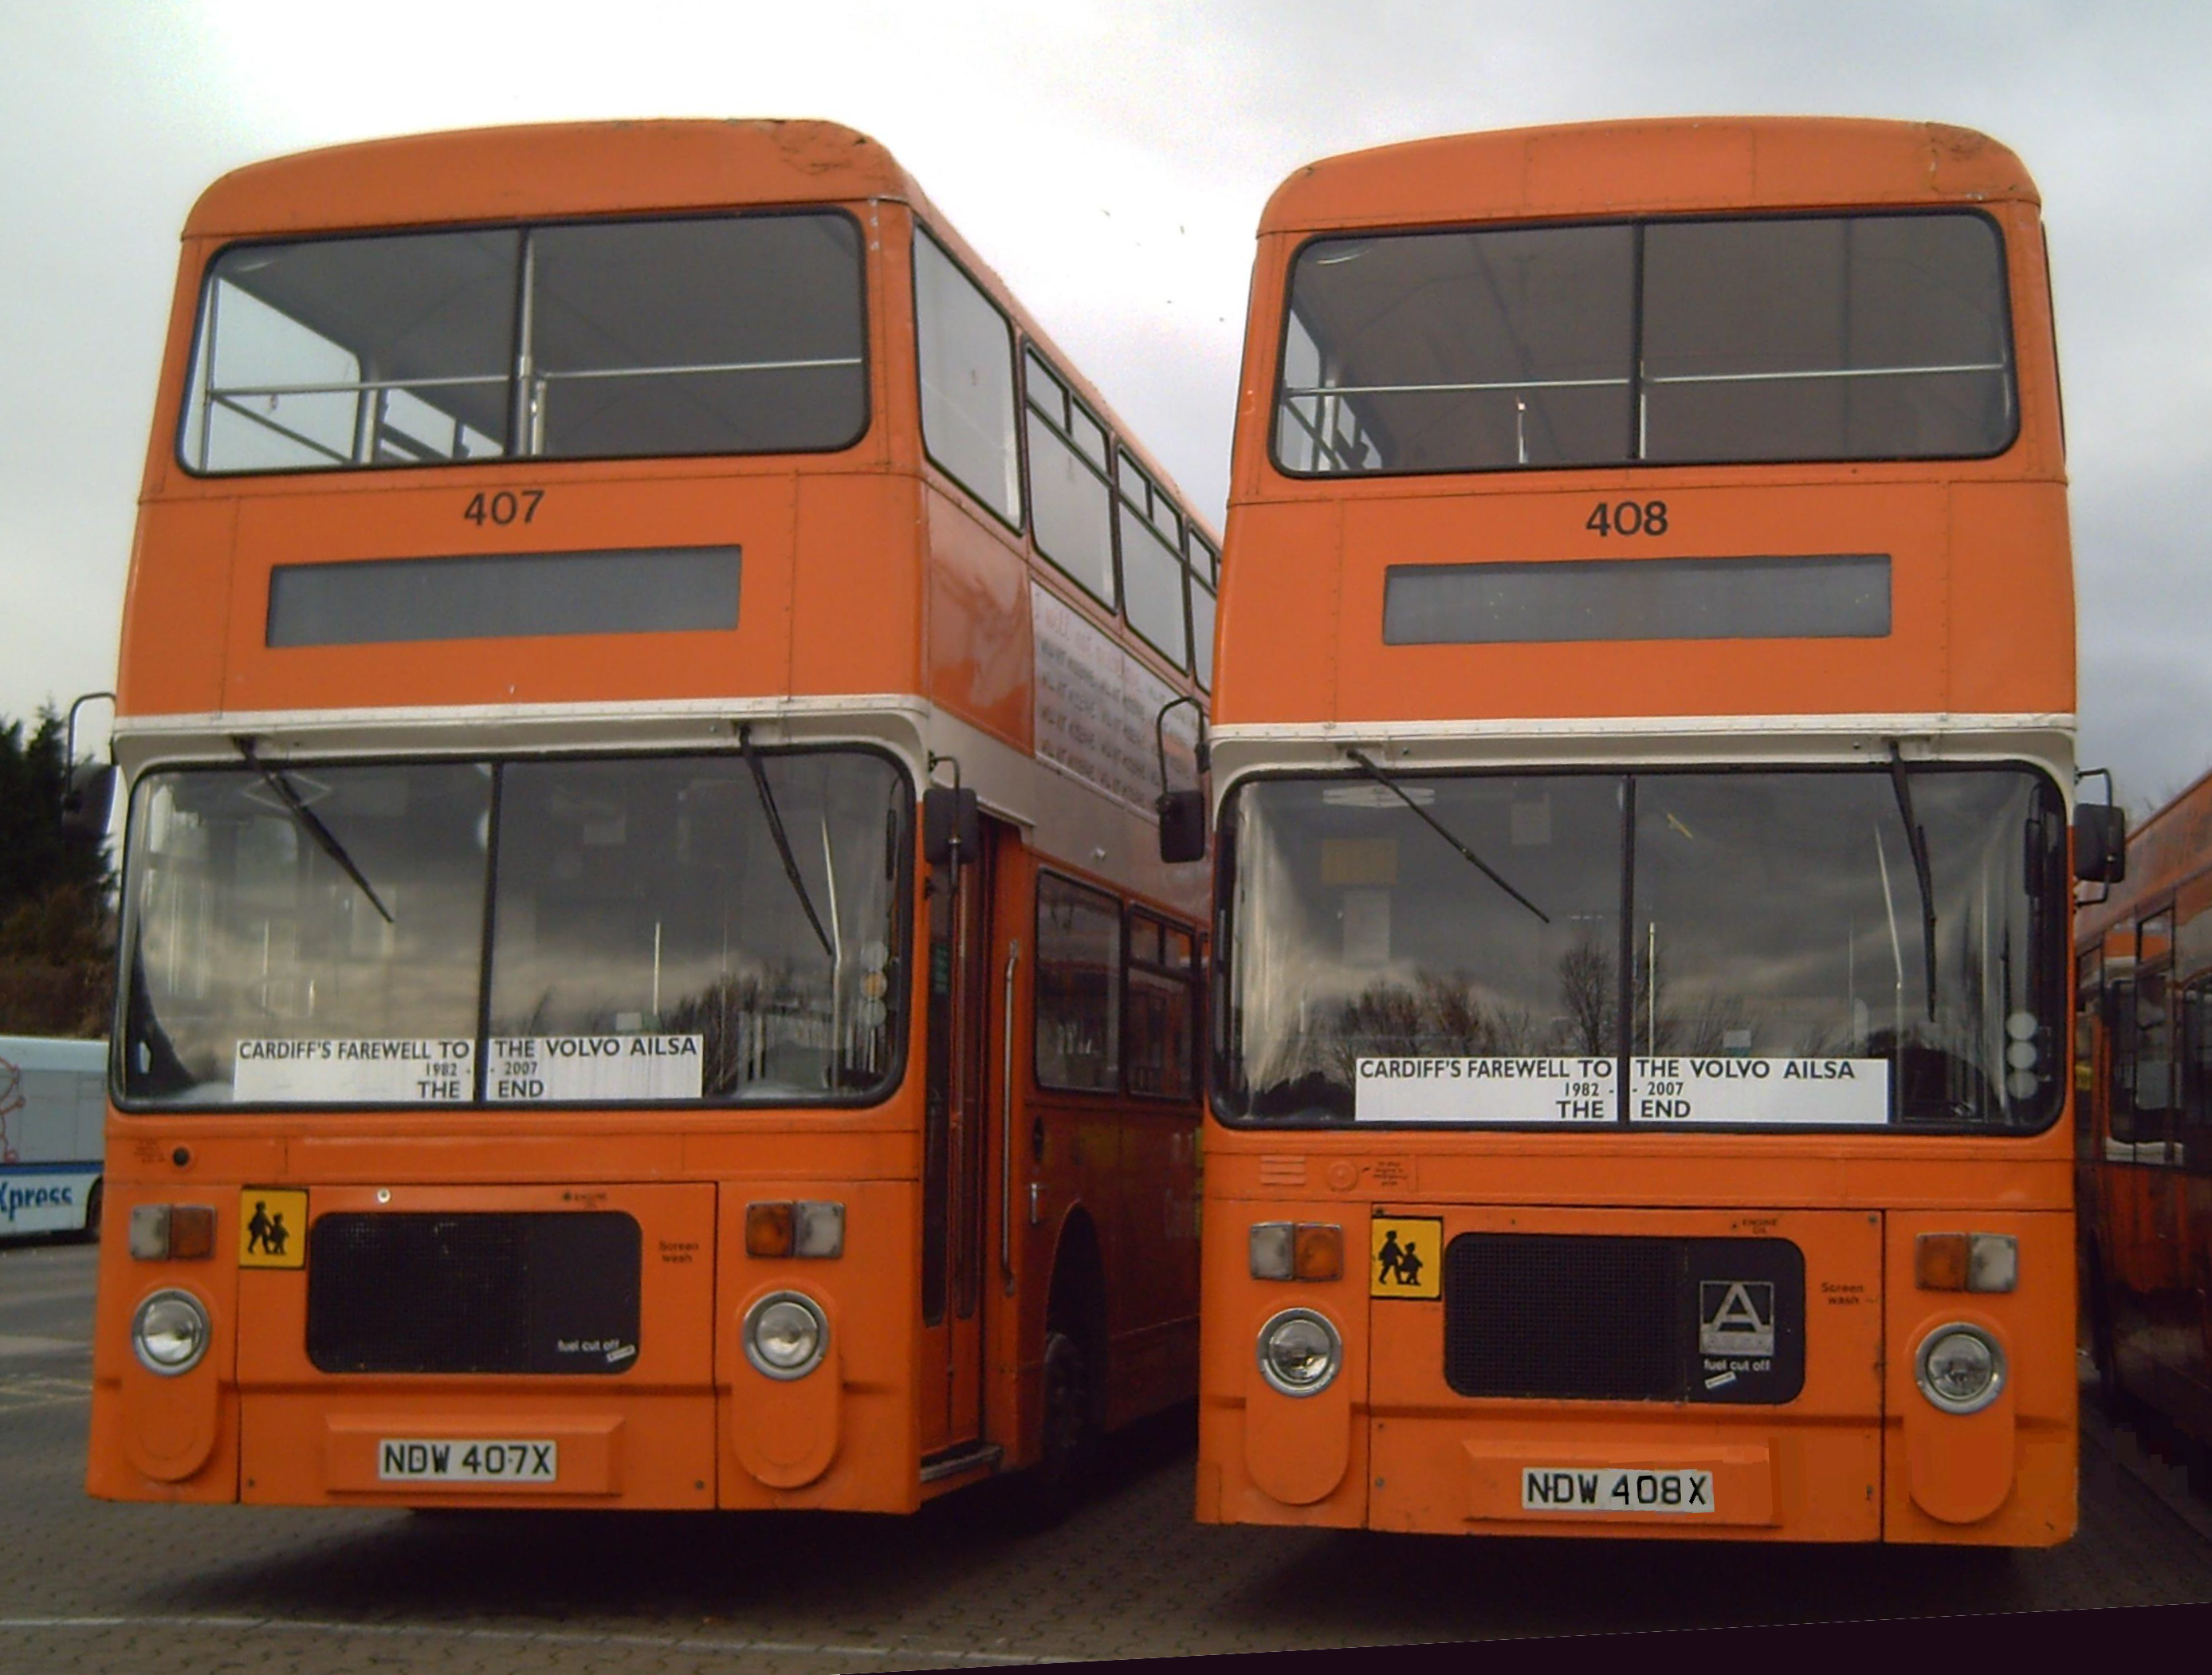 File:Cardiff Bus Ailsas 407 and 408 JPG - Wikimedia Commons